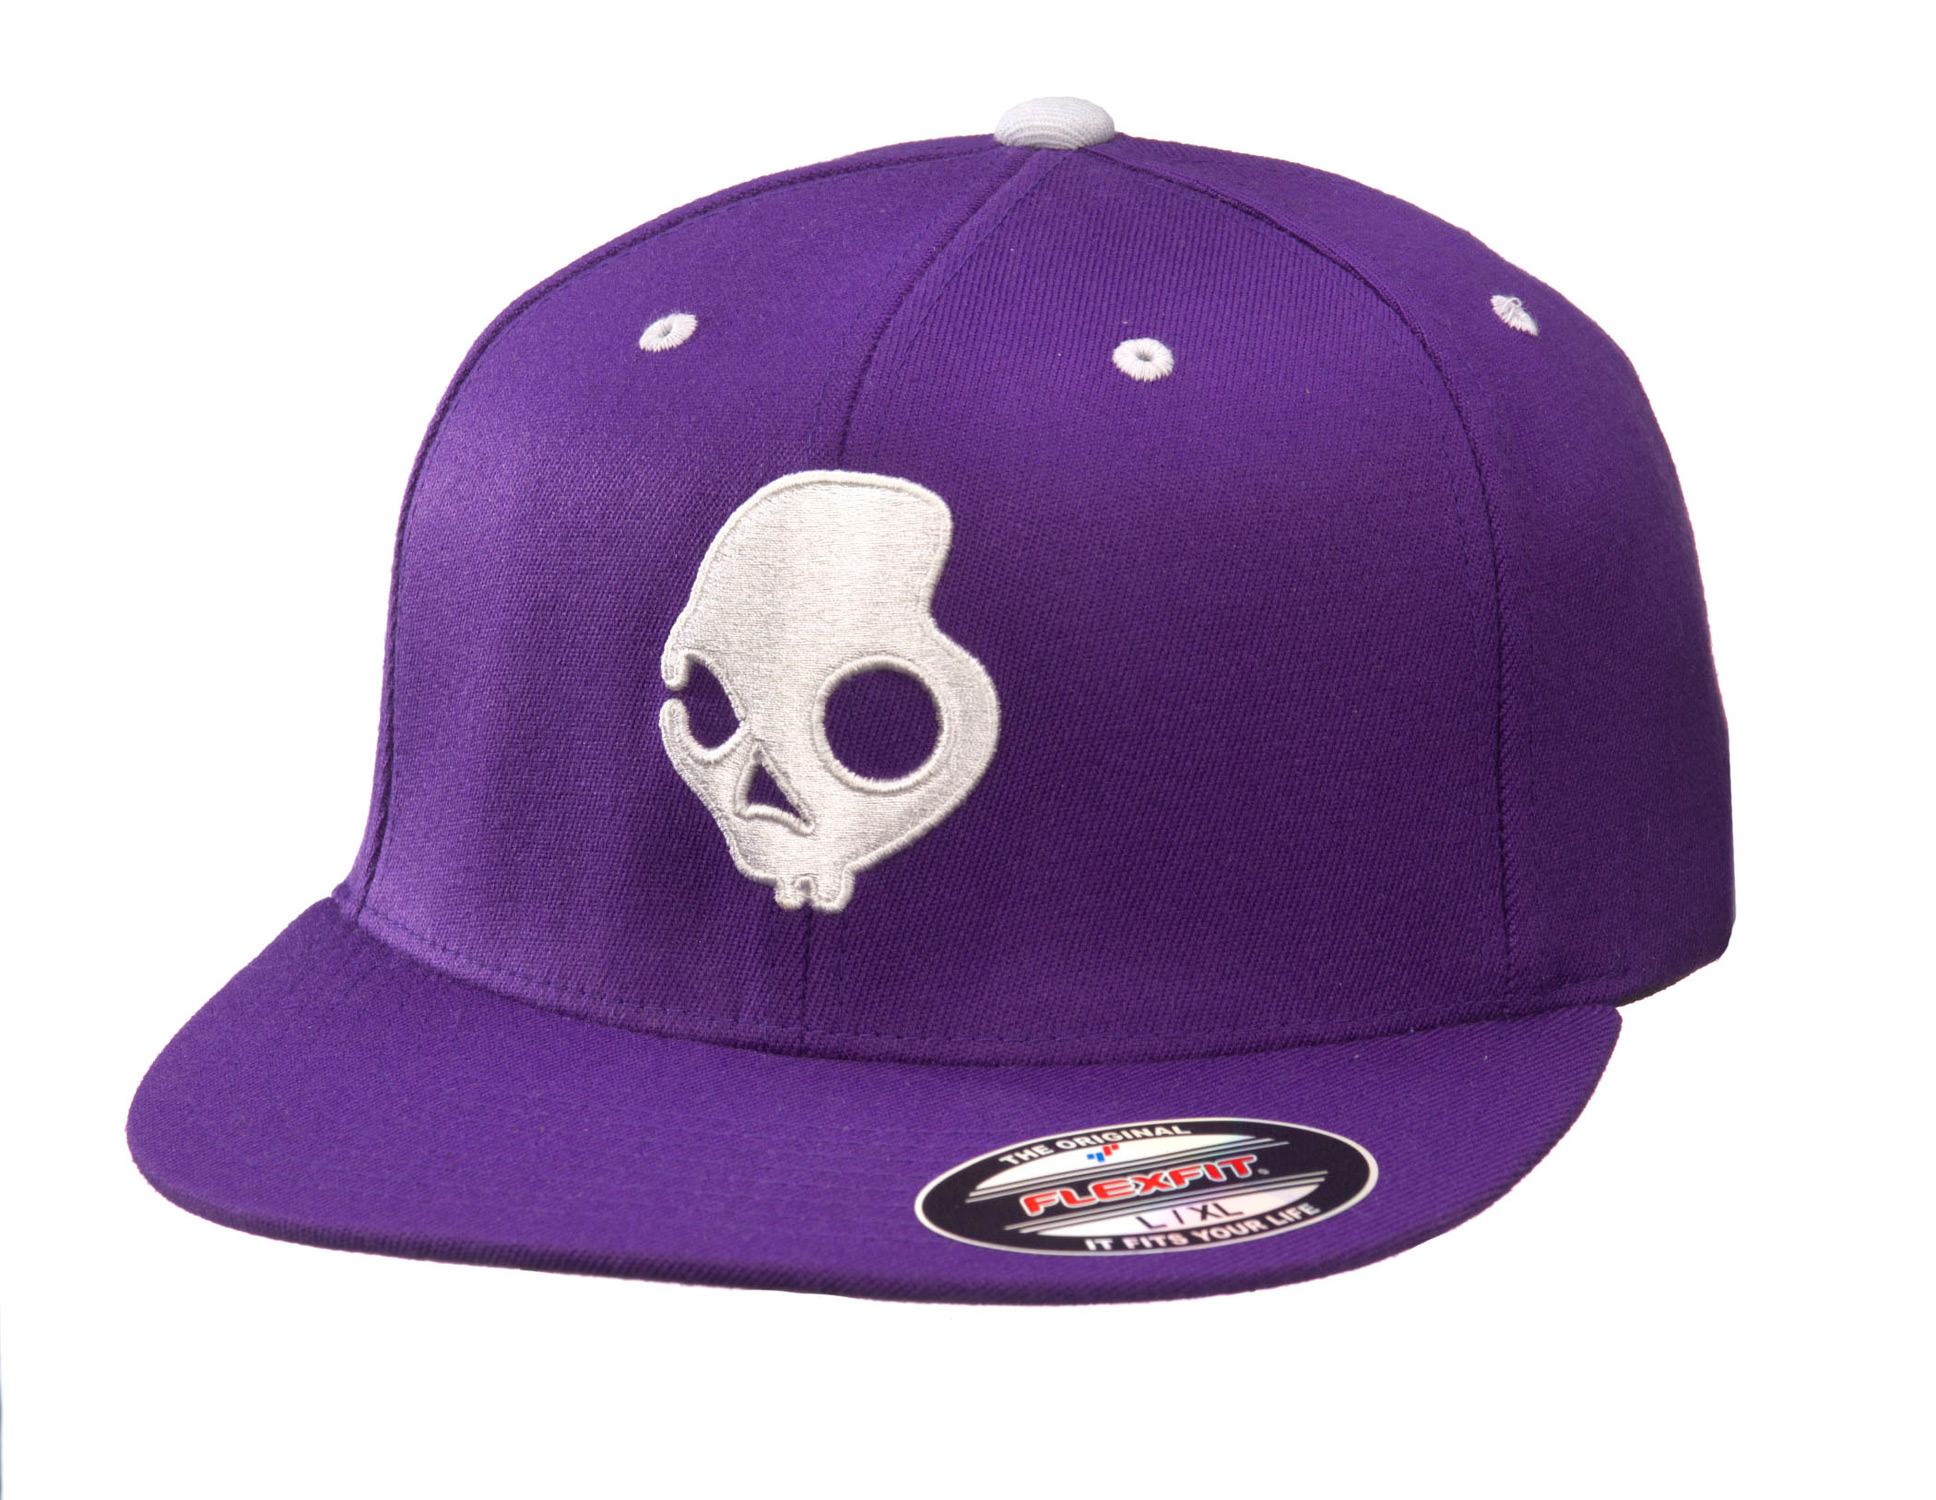 Key Features of the Skullcandy Skullday Long J Fit Cap: 210 Fitted Flexfit Cap - $17.95